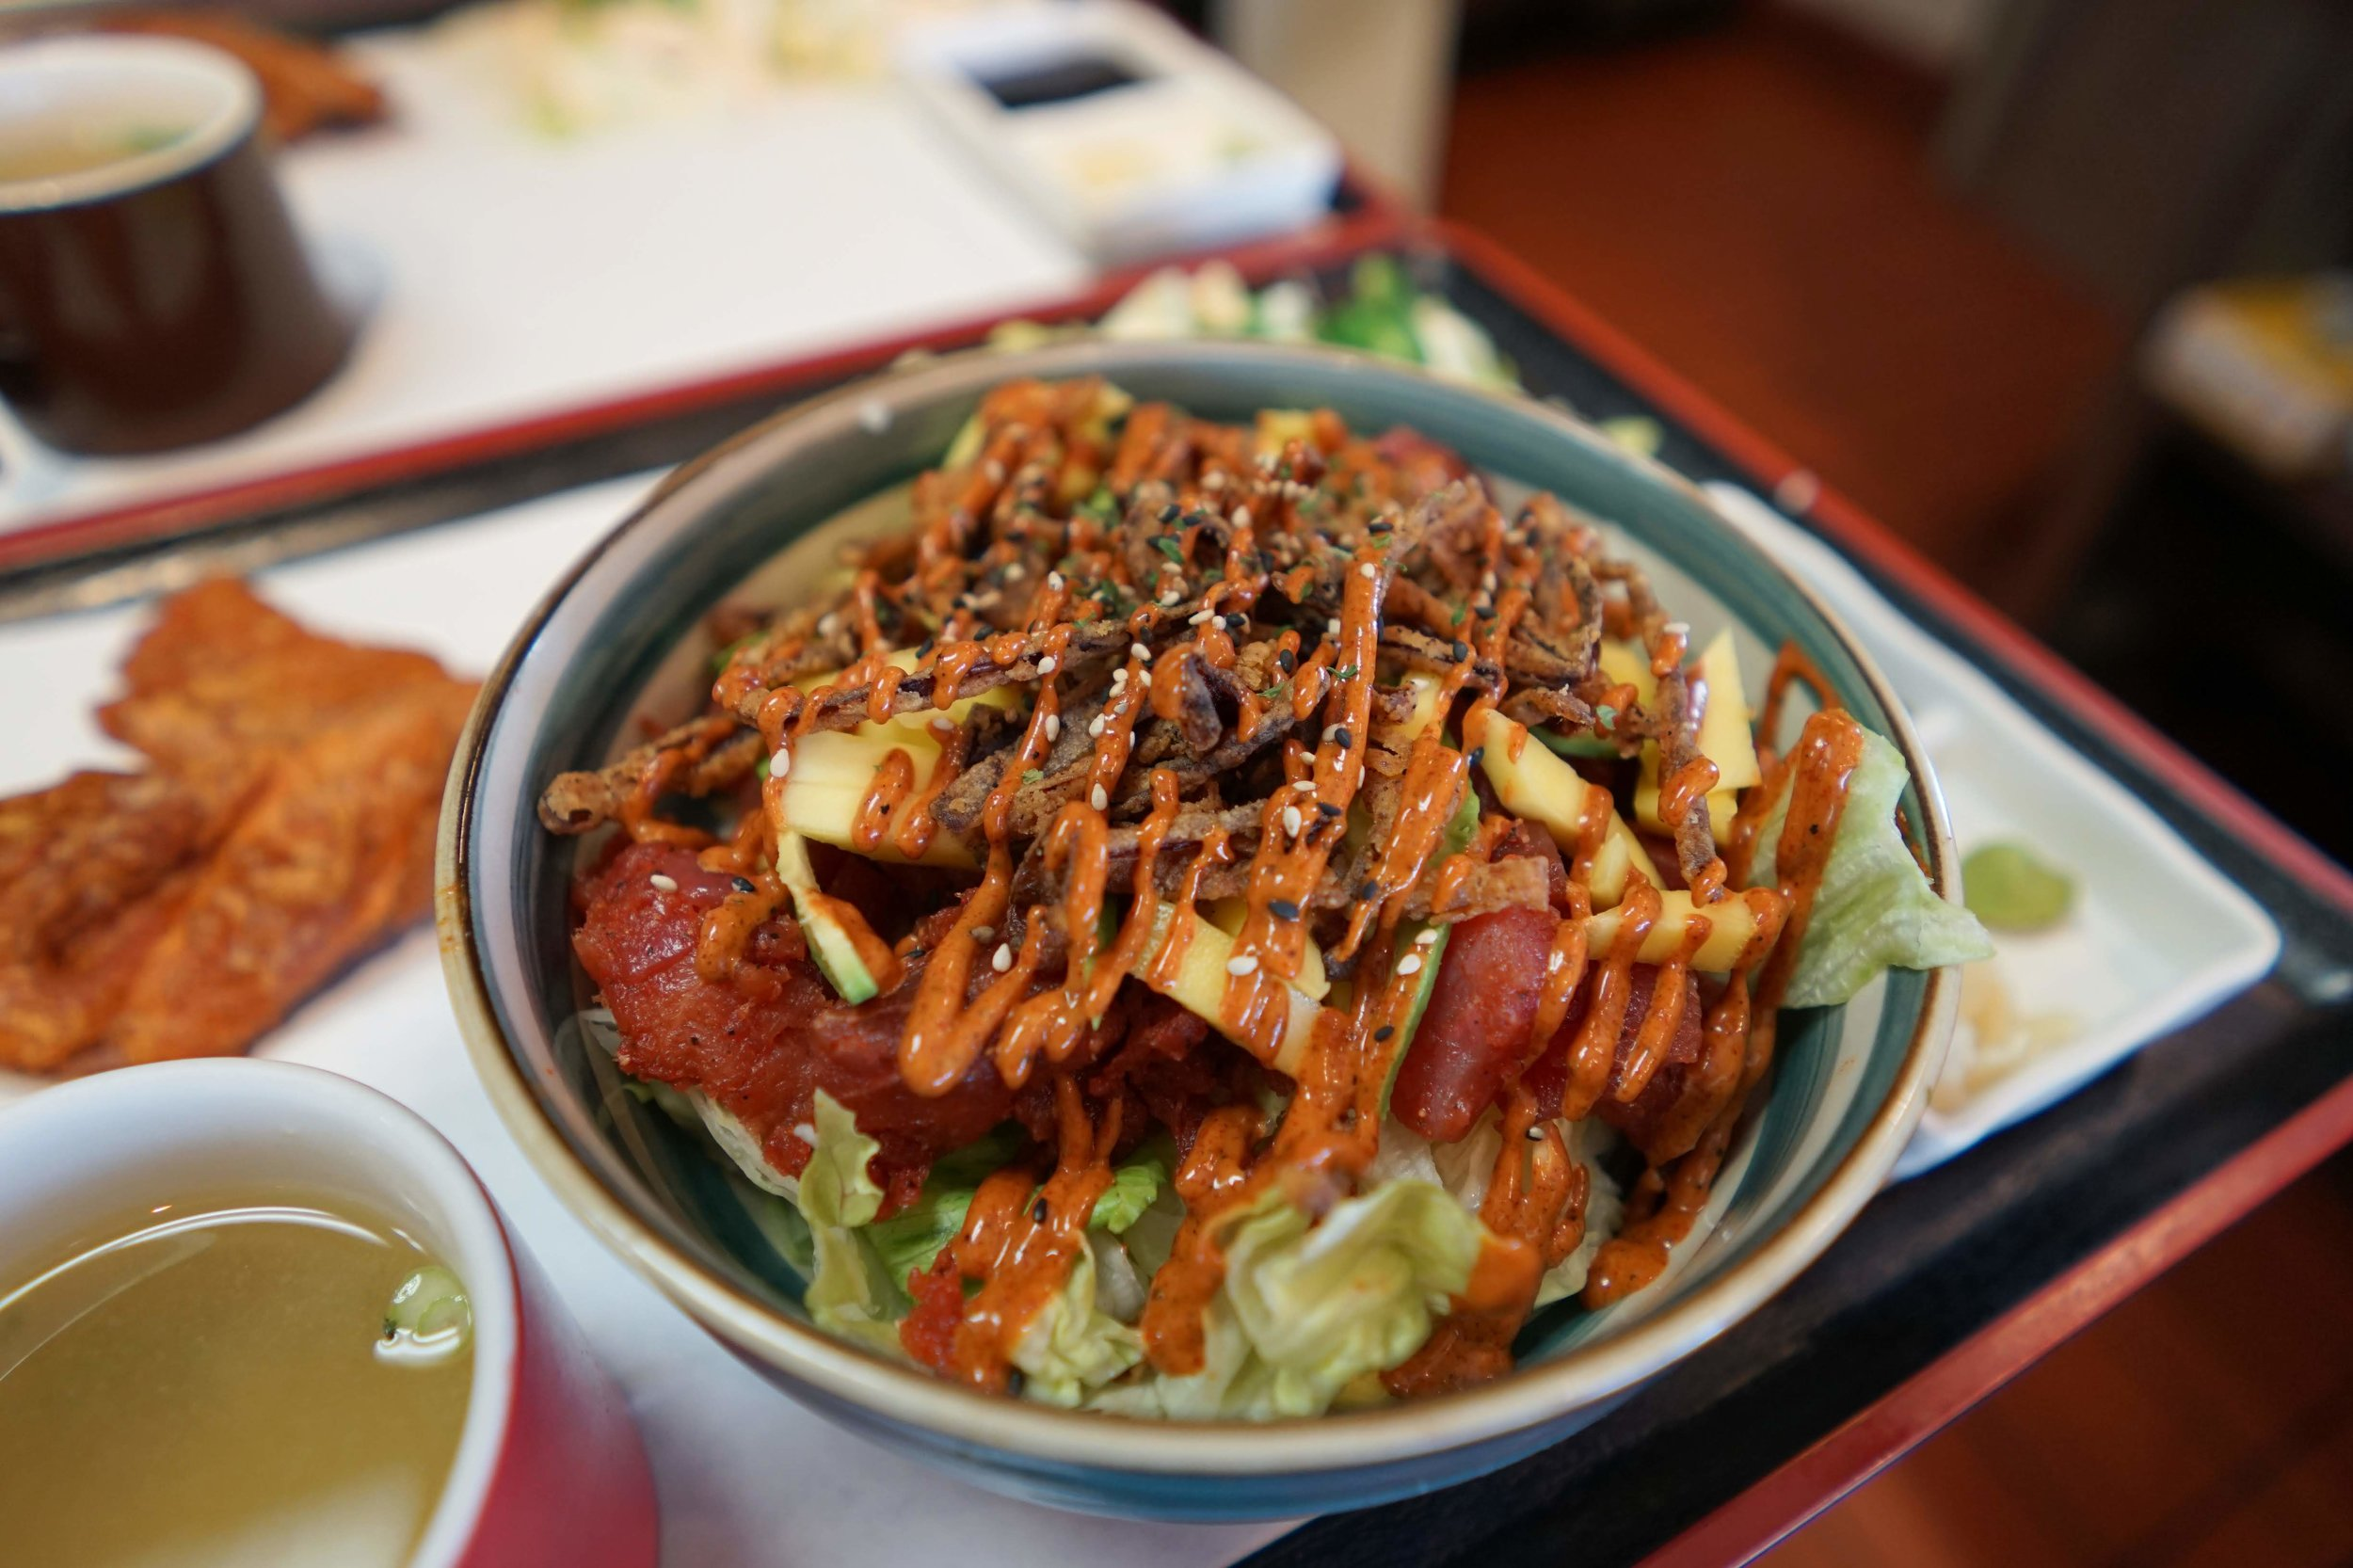 Make Your Own Bowl with spicy tuna, avocado, mango, crispy fried onions, and spicy mayo. Served over salad.